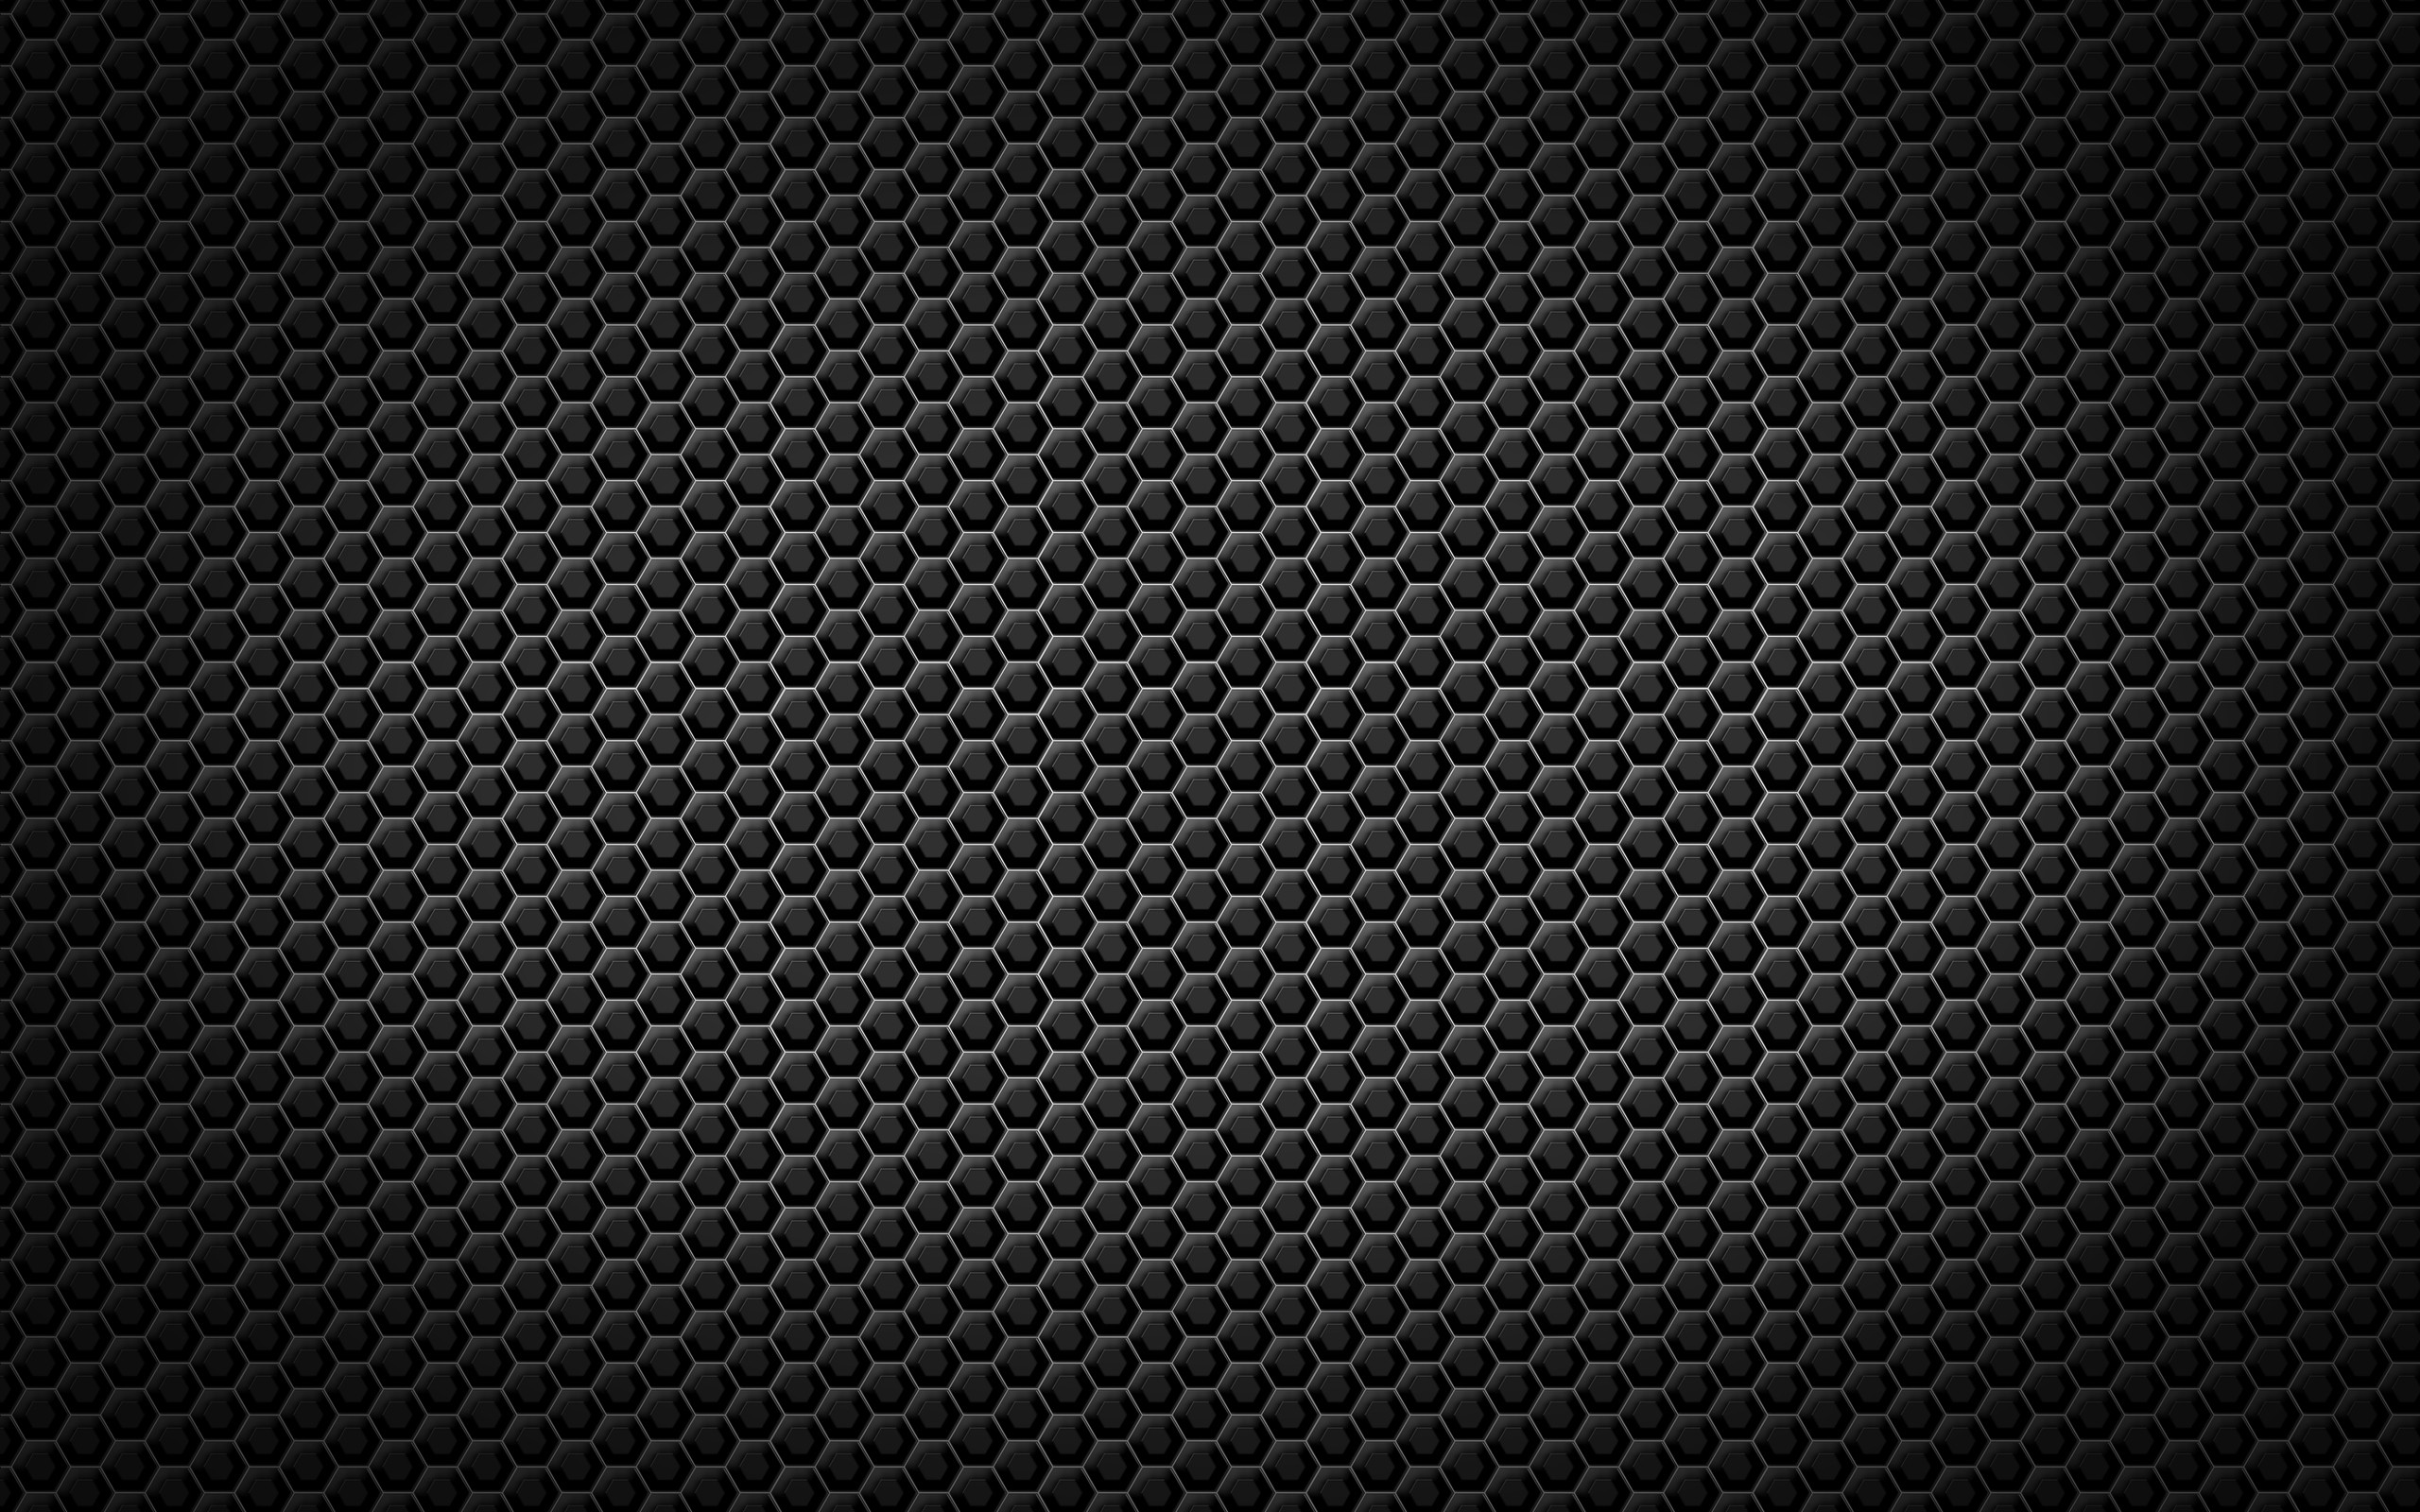 2560x1600 Striped Hd Black Grey Pattern Hd Wallpapers | Wallpaper | Pinterest | Grey  pattern, Hd wallpaper and Wallpaper